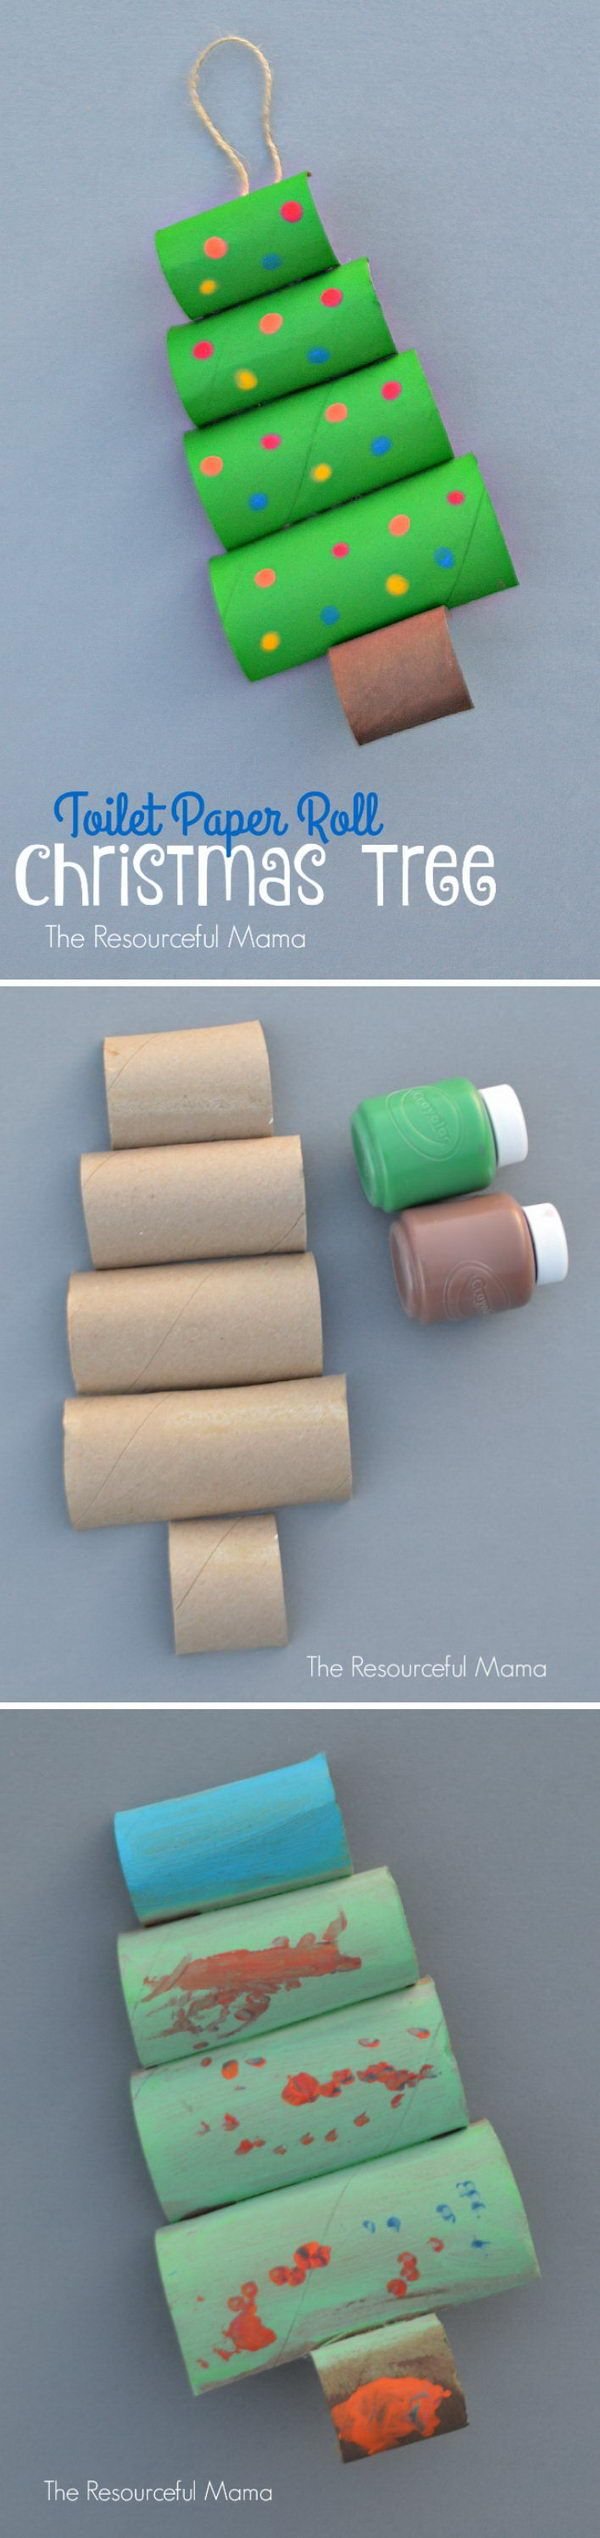 Easy and cute diy christmas crafts for kids to make tree crafts toilet paper roll christmas tree craft jeuxipadfo Image collections